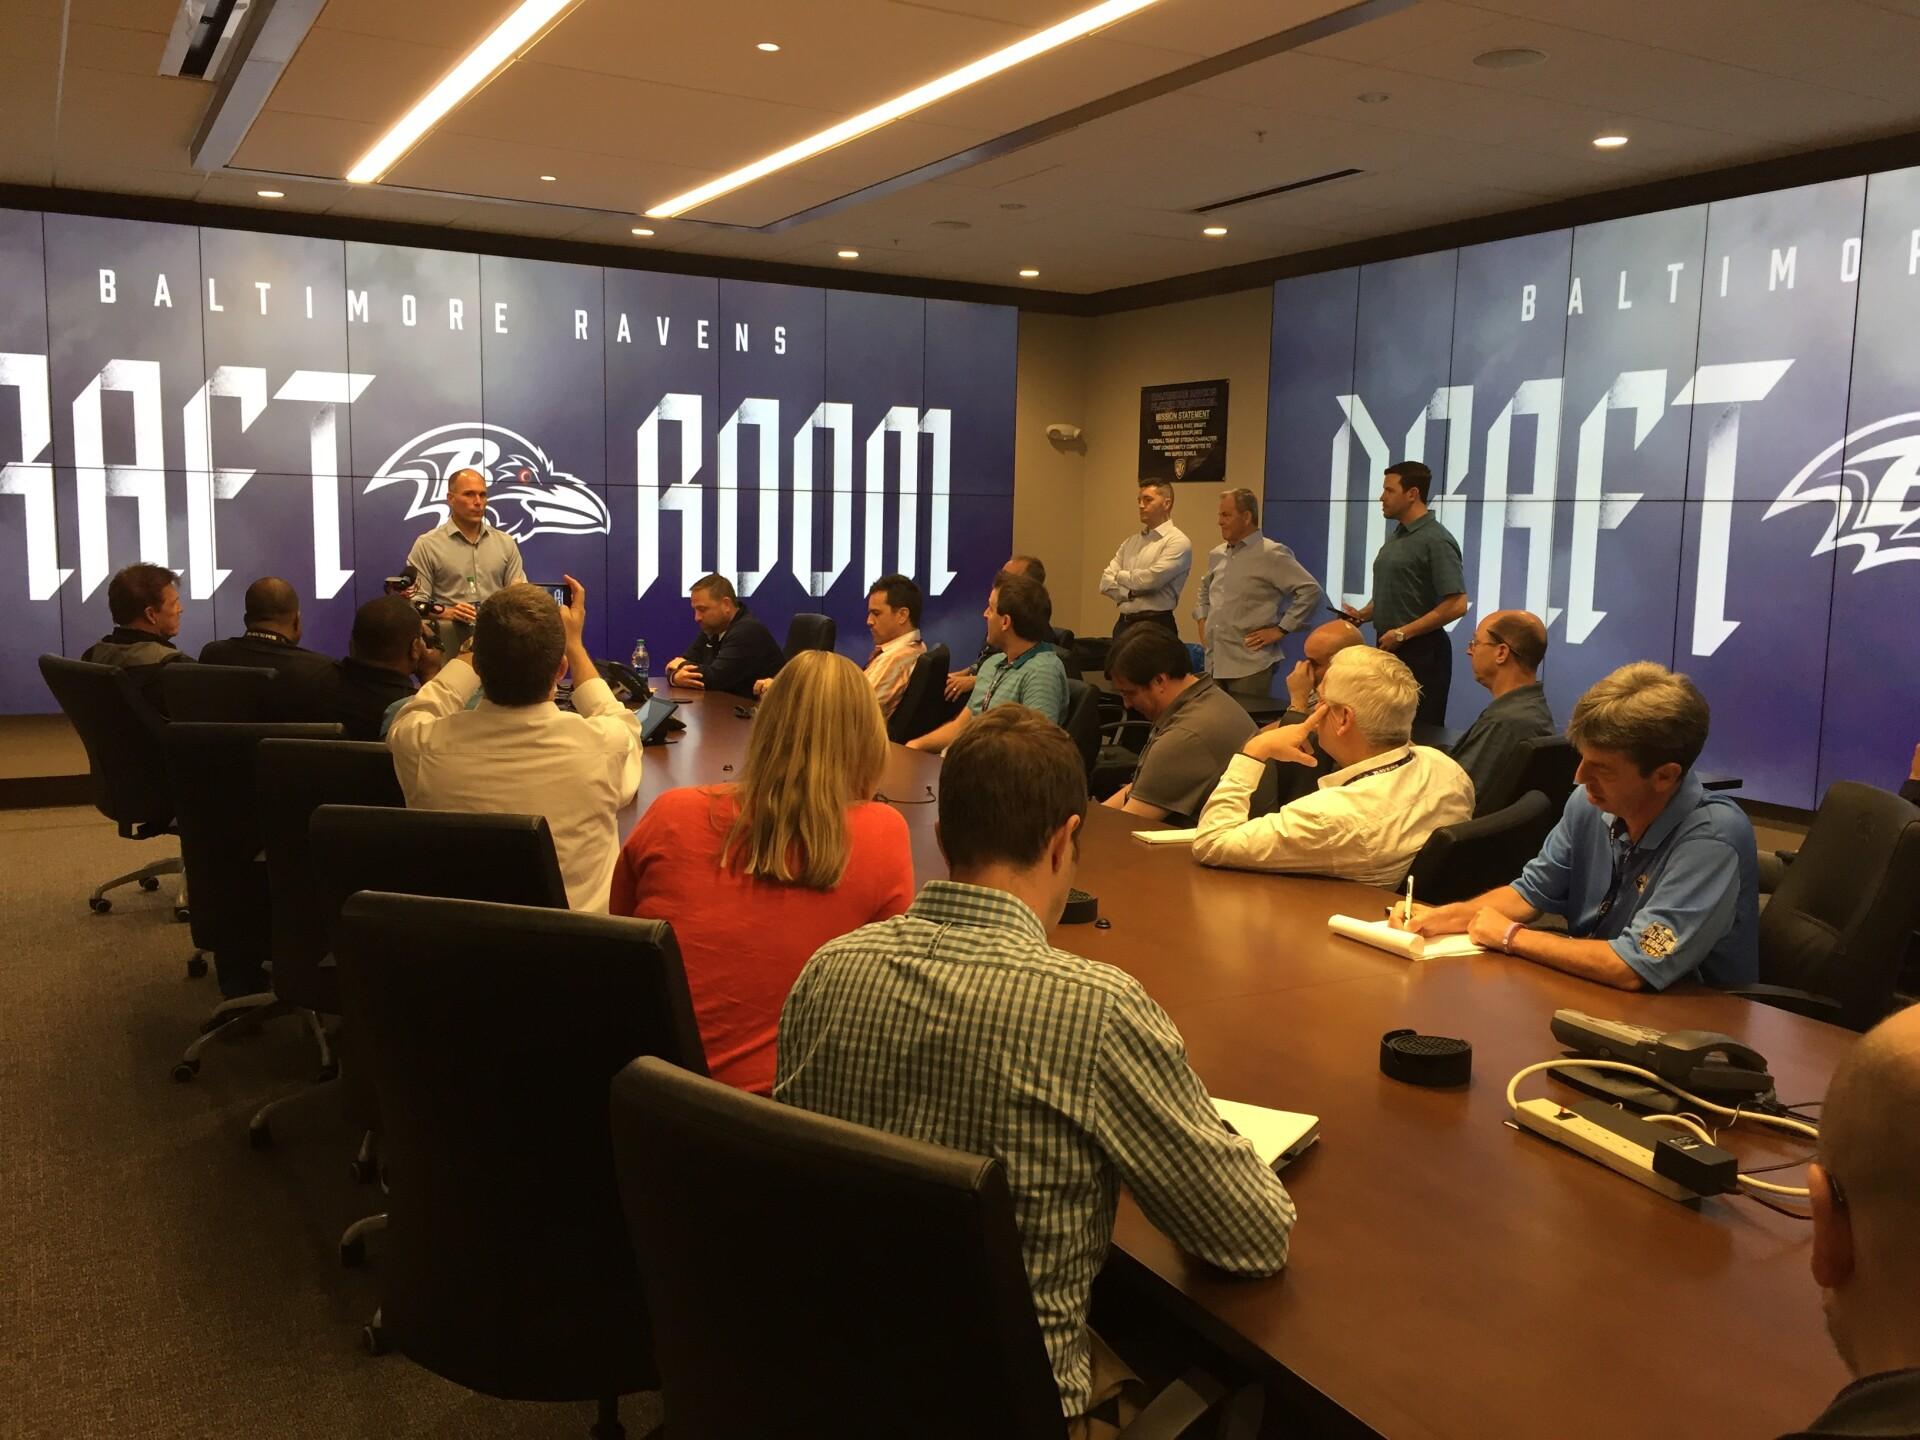 ravens draft war room.JPG